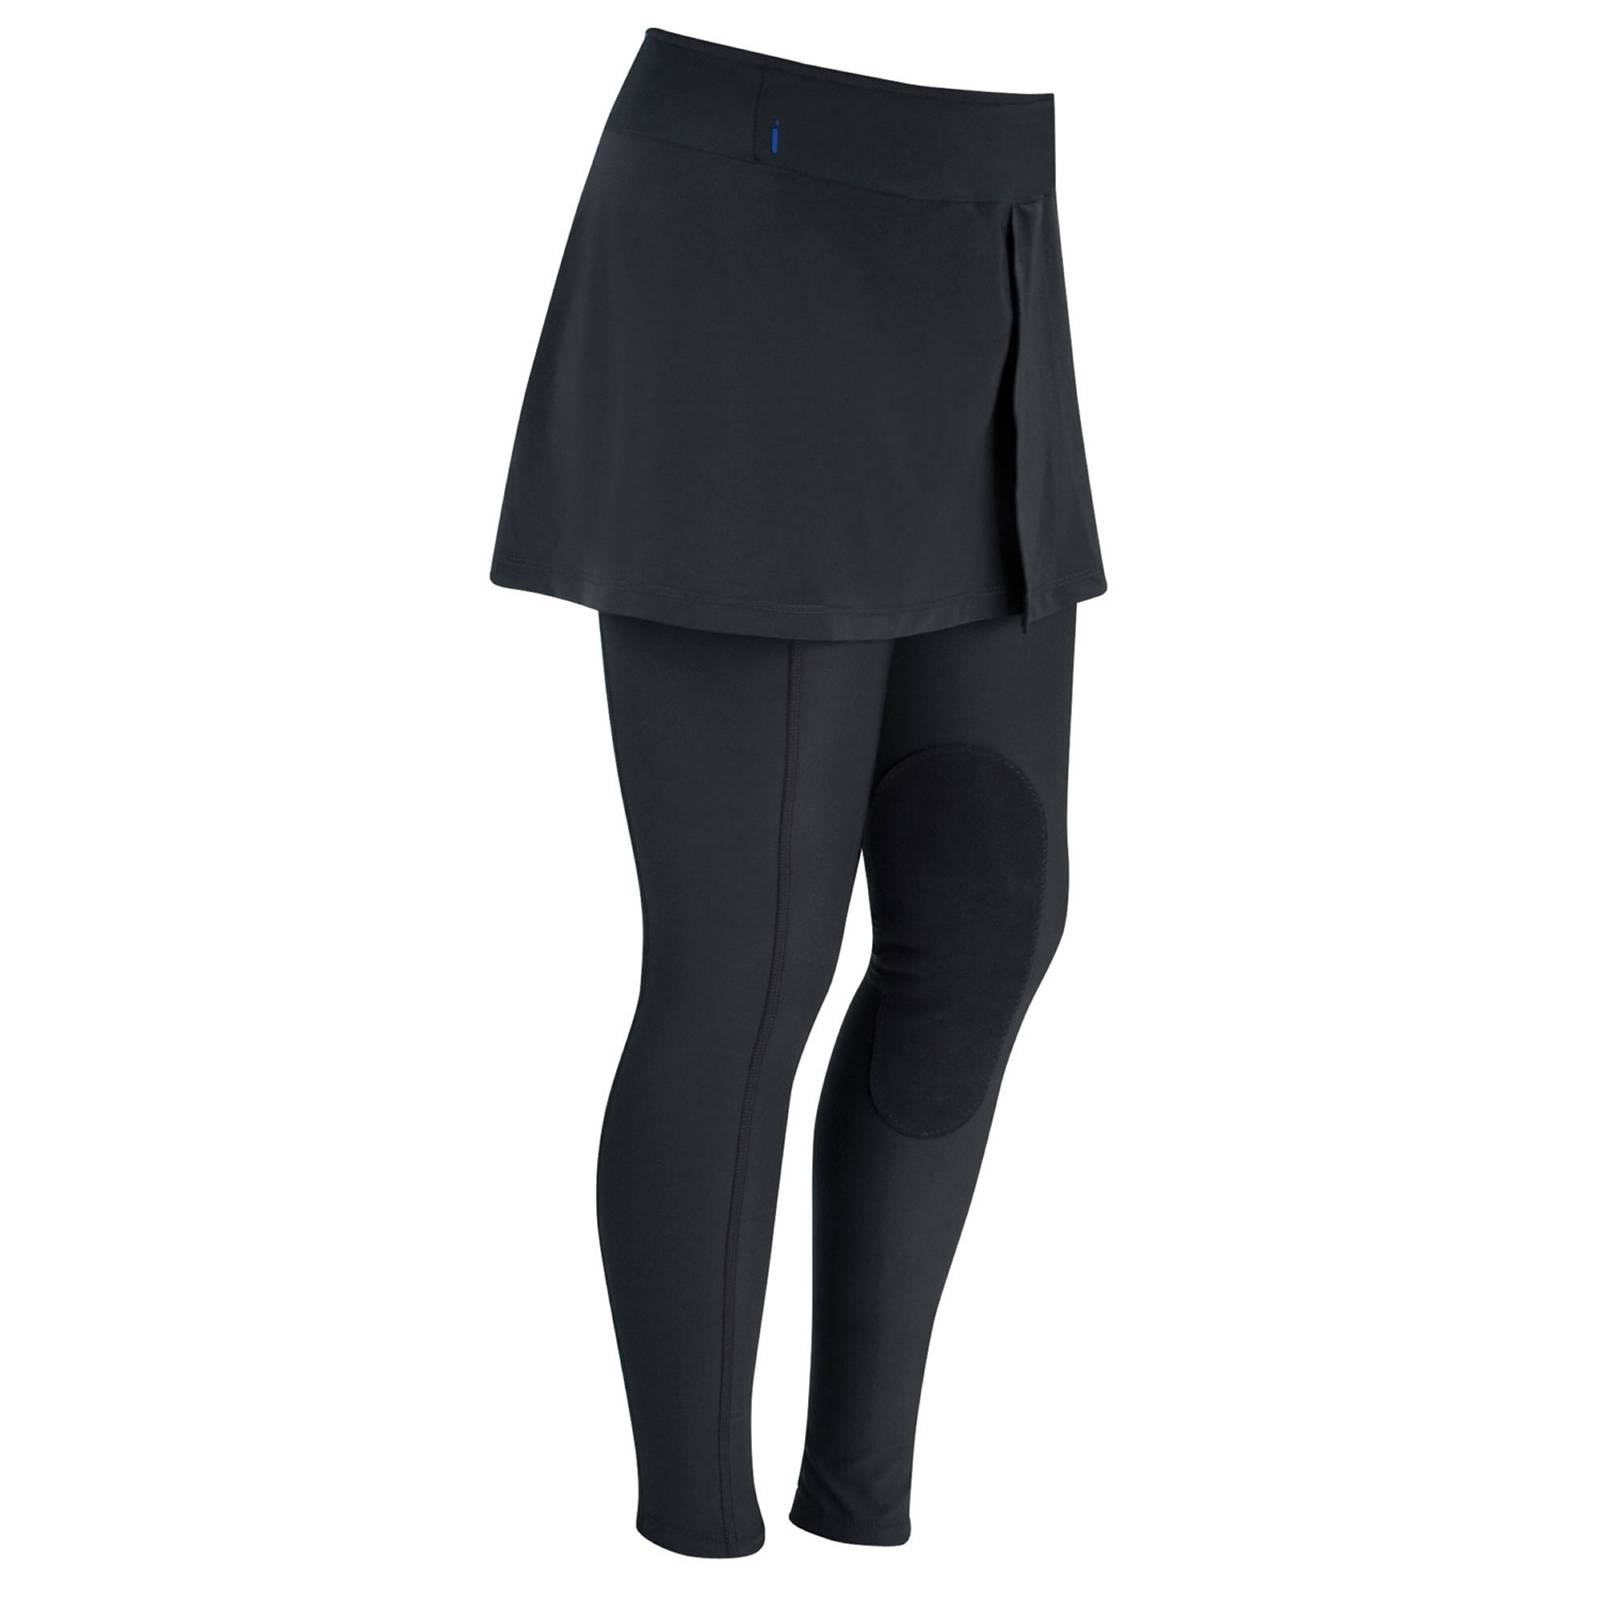 Irideon Ladies Issential Mini Riding Tights